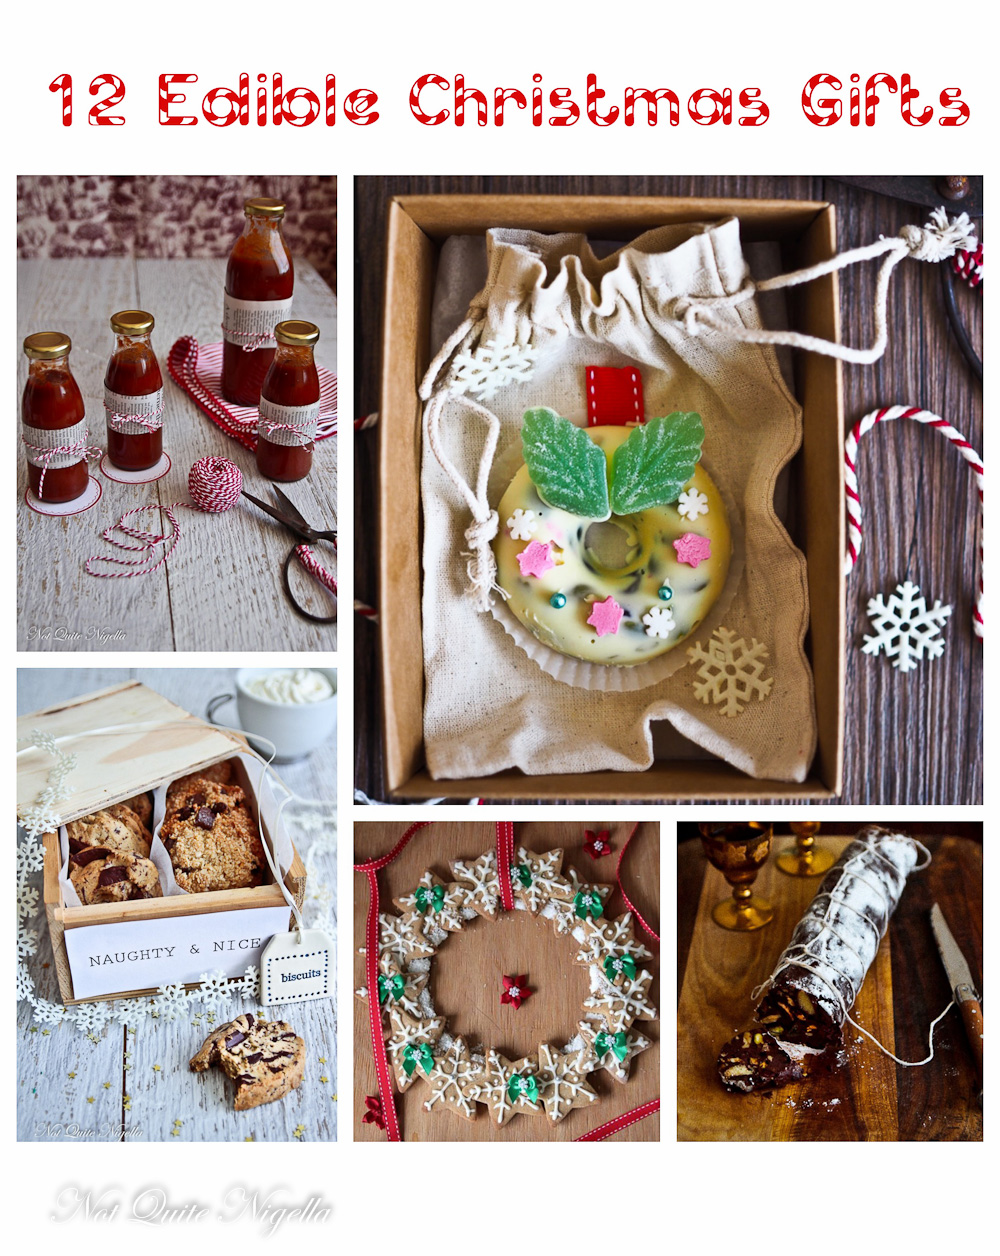 Edible Christmas Food Presents